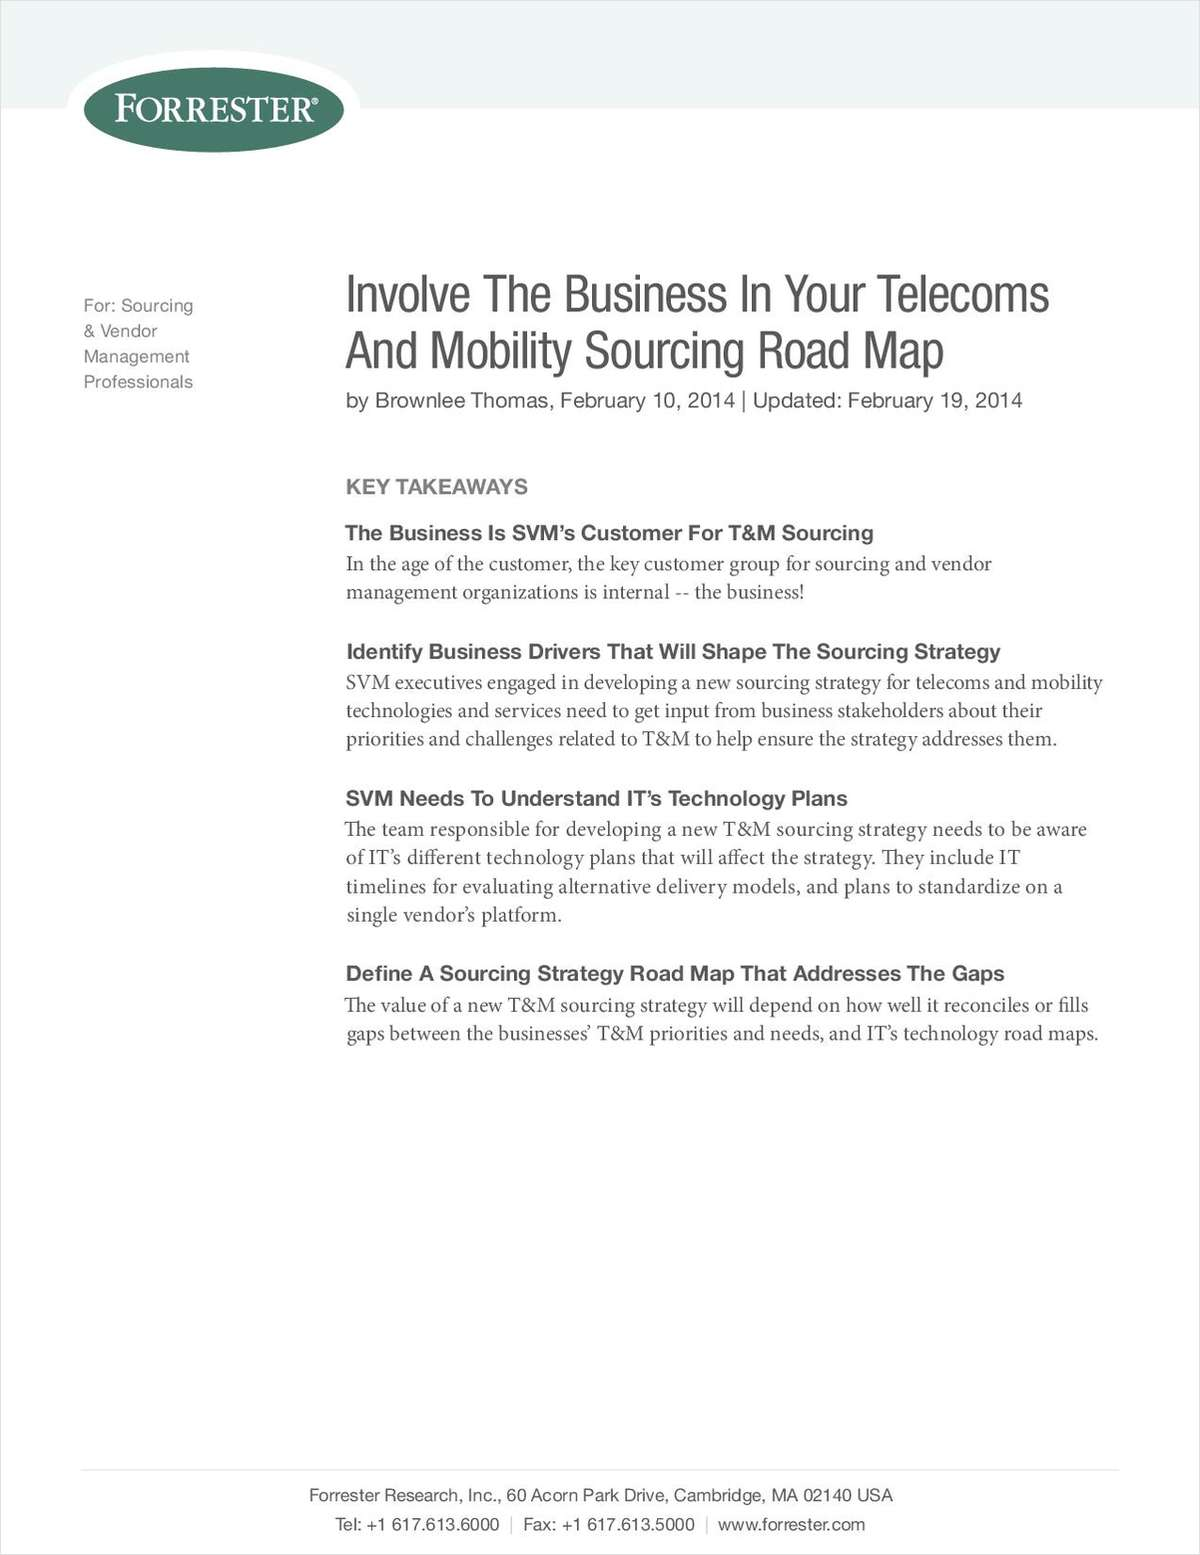 Involve the Business in your Telecoms and Mobility Sourcing Road Map